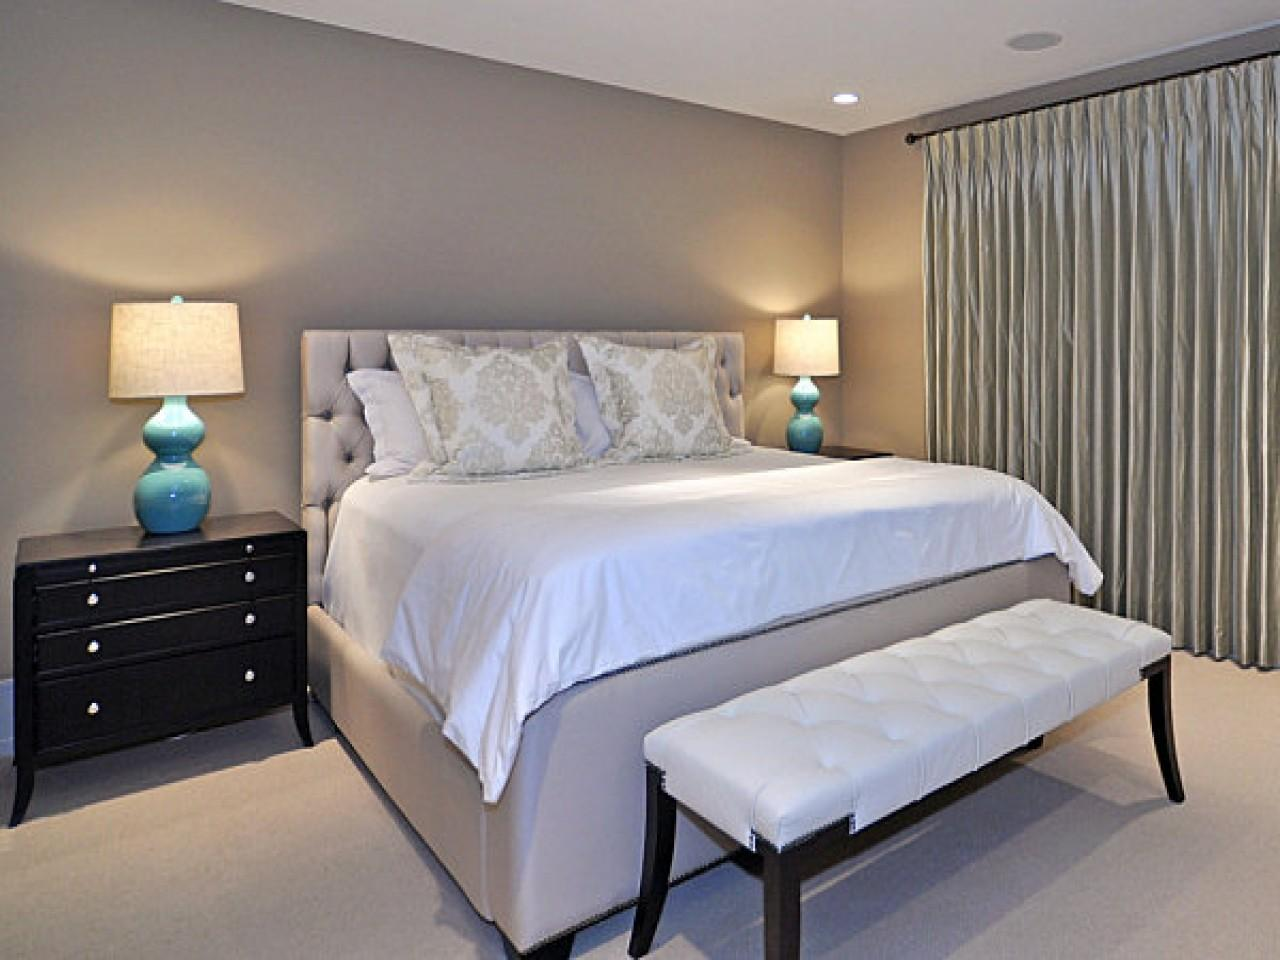 45 Very Awesome Relaxing Bedroom Colors Ideas That Will Upgrade Your Home For Free For 2021 Images Decoratorist